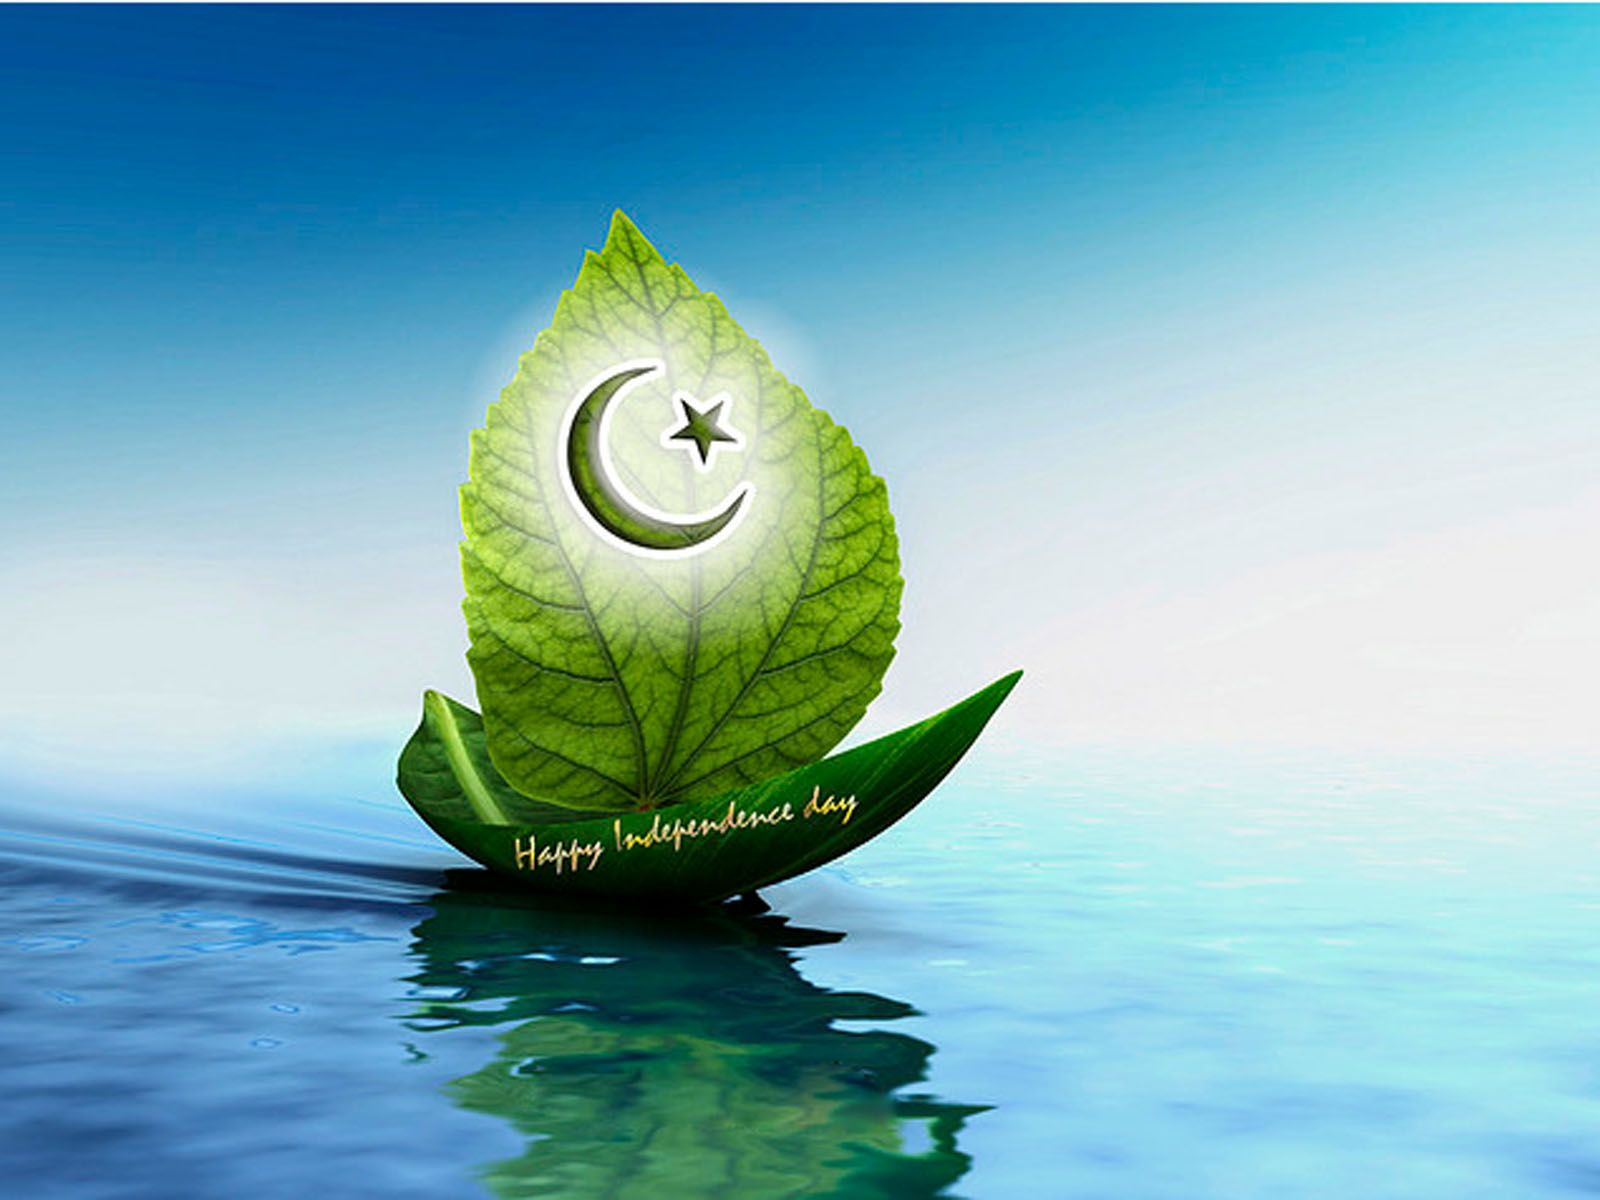 1600x1200 Baby With Pakistan Flag Hd Wallpaper Widescreen Full Pics For Laptop ...